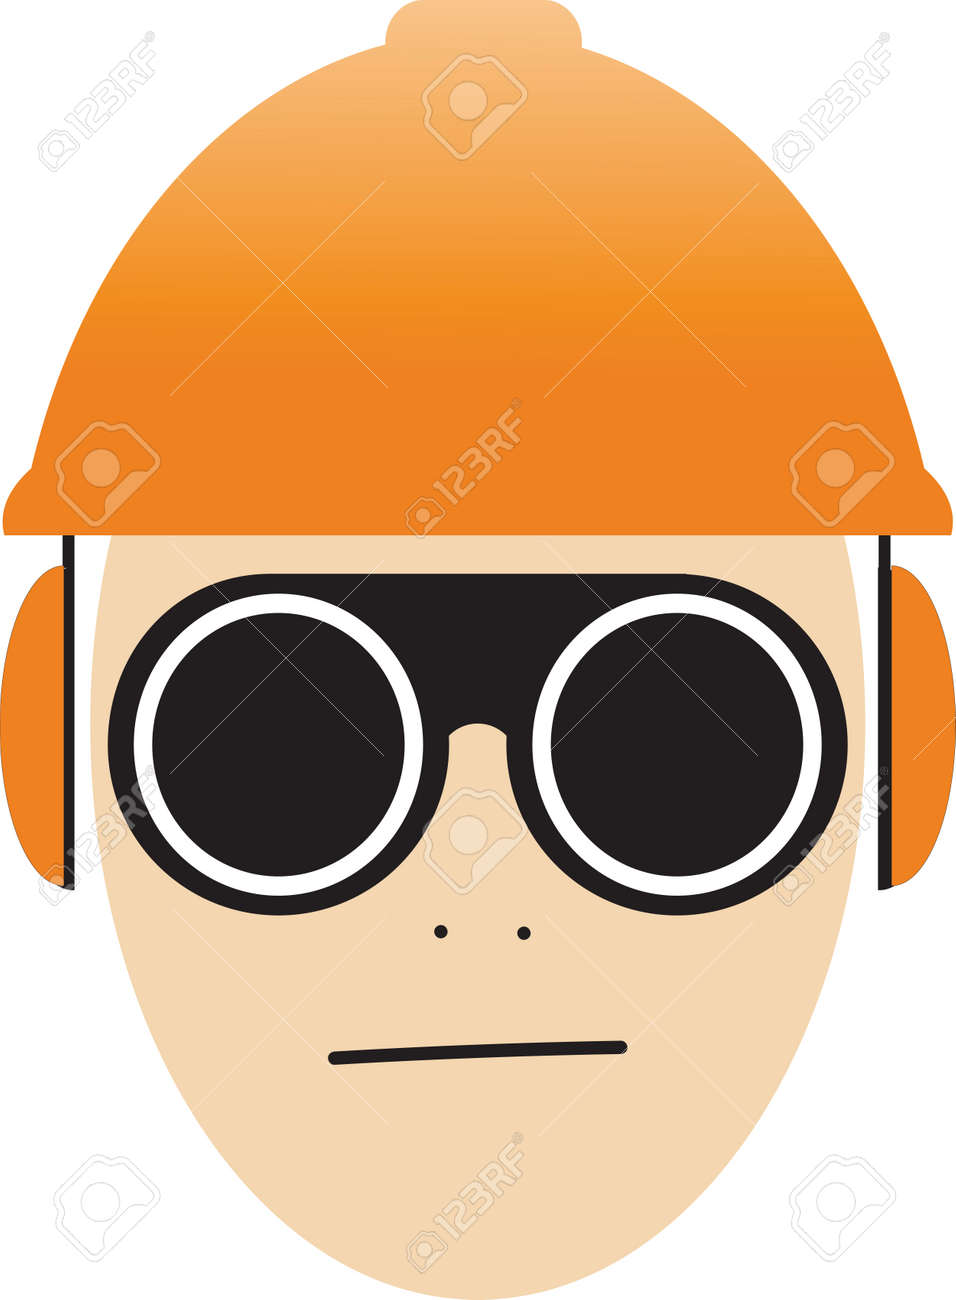 Job safety icon illustration vector, worker wearing glasses, helmet and ear protection - 164755810